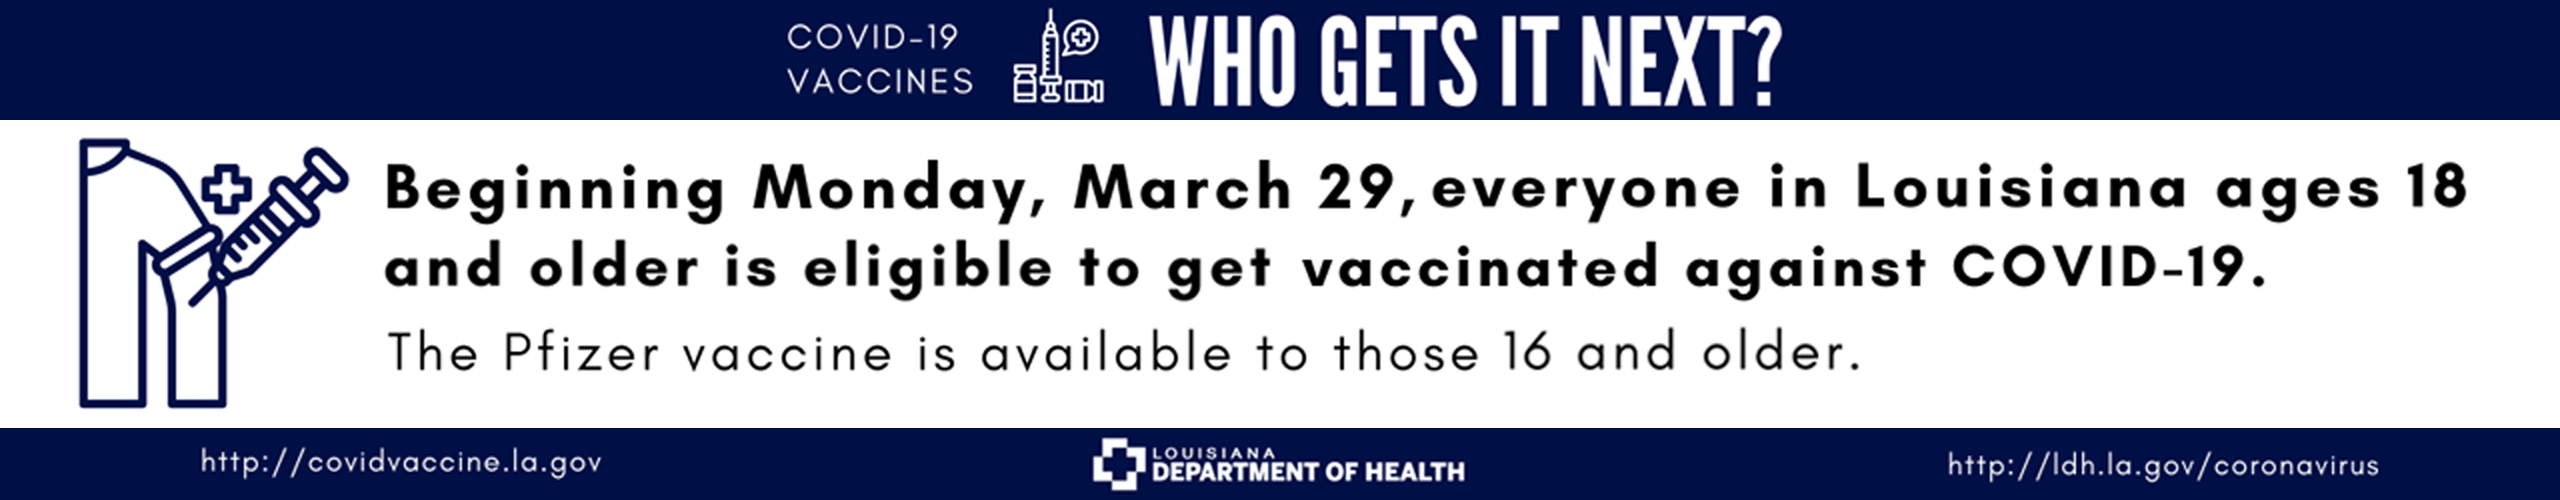 Who gets it next? Beginning Monday, March 29, everyone in Louisiana ages 18 and older is eligible to get vaccinated against COVID-19. The Pfizer vaccine is available to those 16 and older.